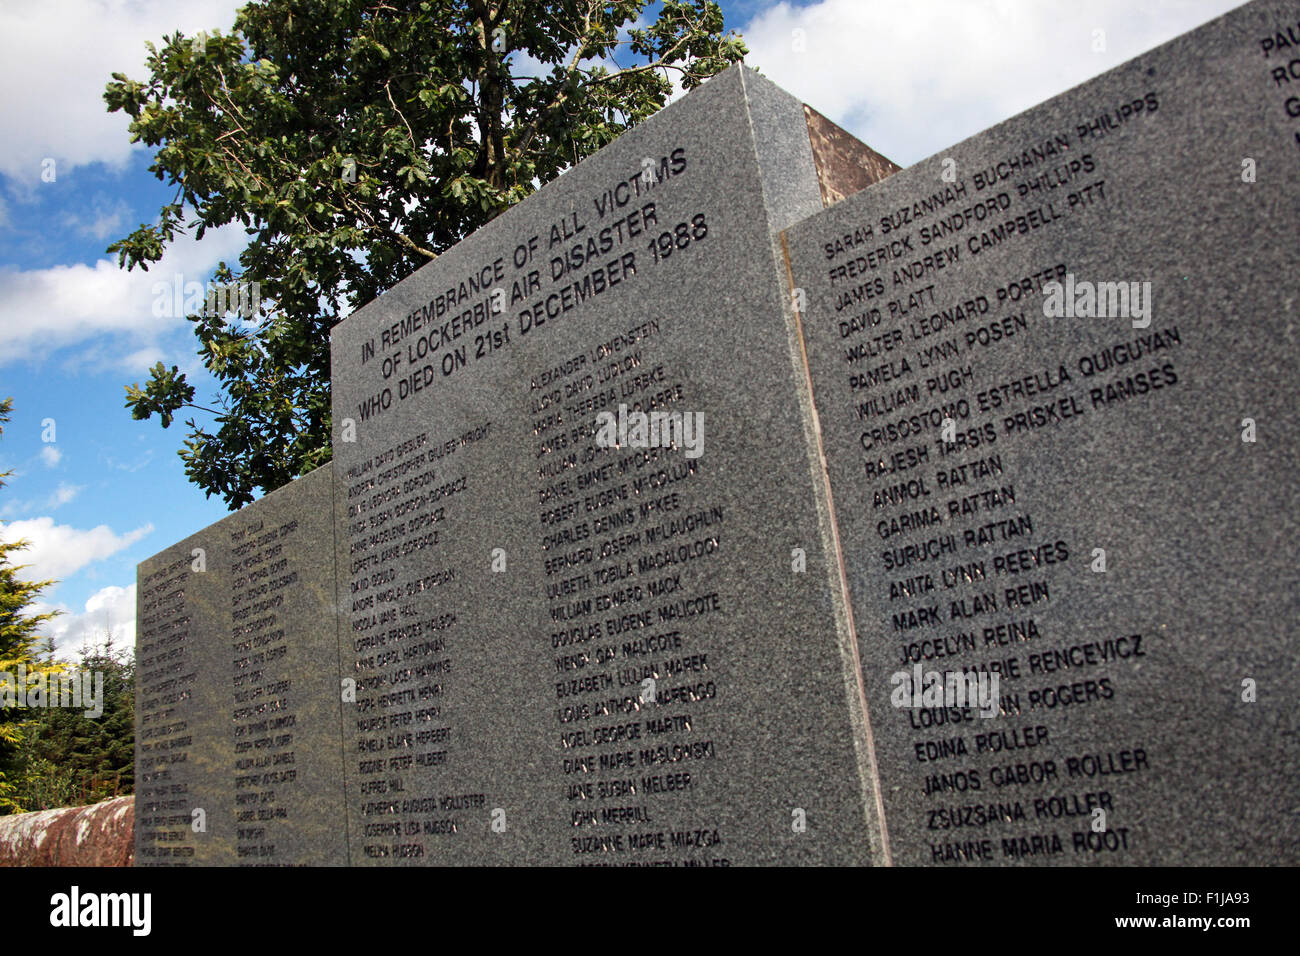 Lockerbie PanAm103 In Rememberance Memorial Names, Scotland - Stock Image